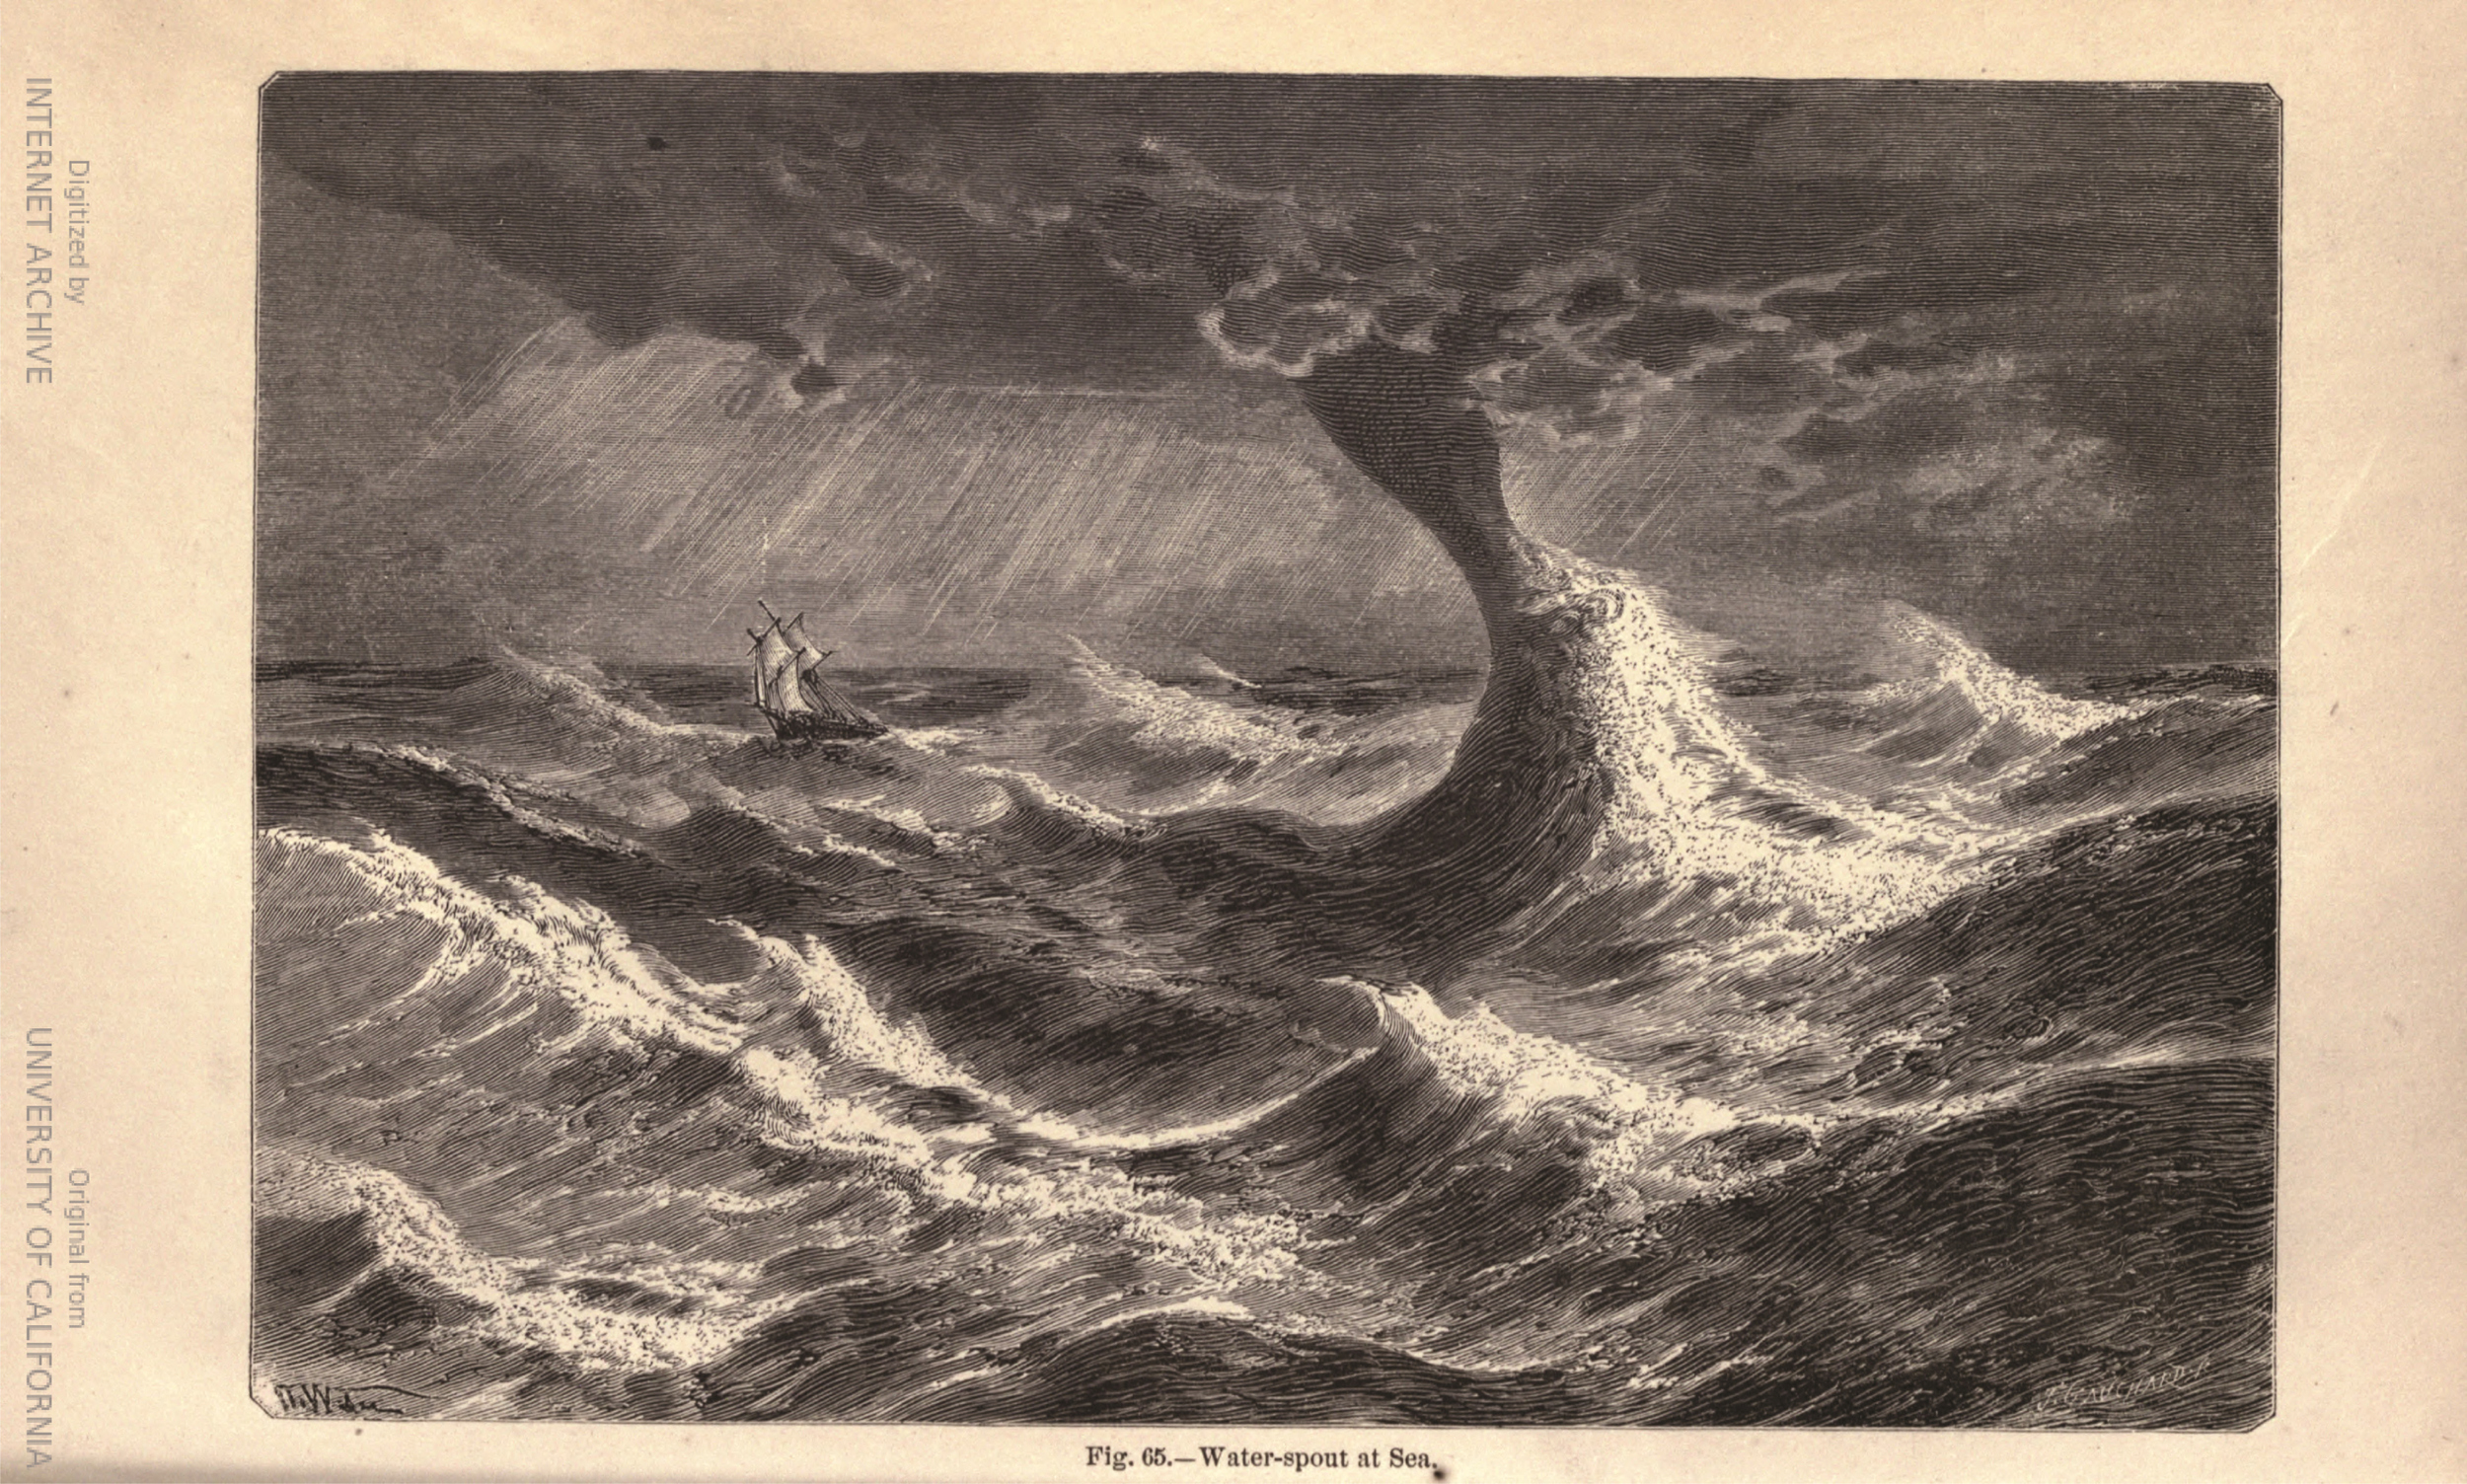 Water-Spout at Sea  from  L'atmosphère  by  Camille Flammarion  (1842 – 1925), translated by  James Glaisher  (1809 – 1903).   source: Flammarion, C., 1874: The Atmosphere. Translated from the French by James Glaisher, Harper  & Brothers, Publishers, Franklin Square, New York. (via Internet Archive and  Hathi Trust  ).